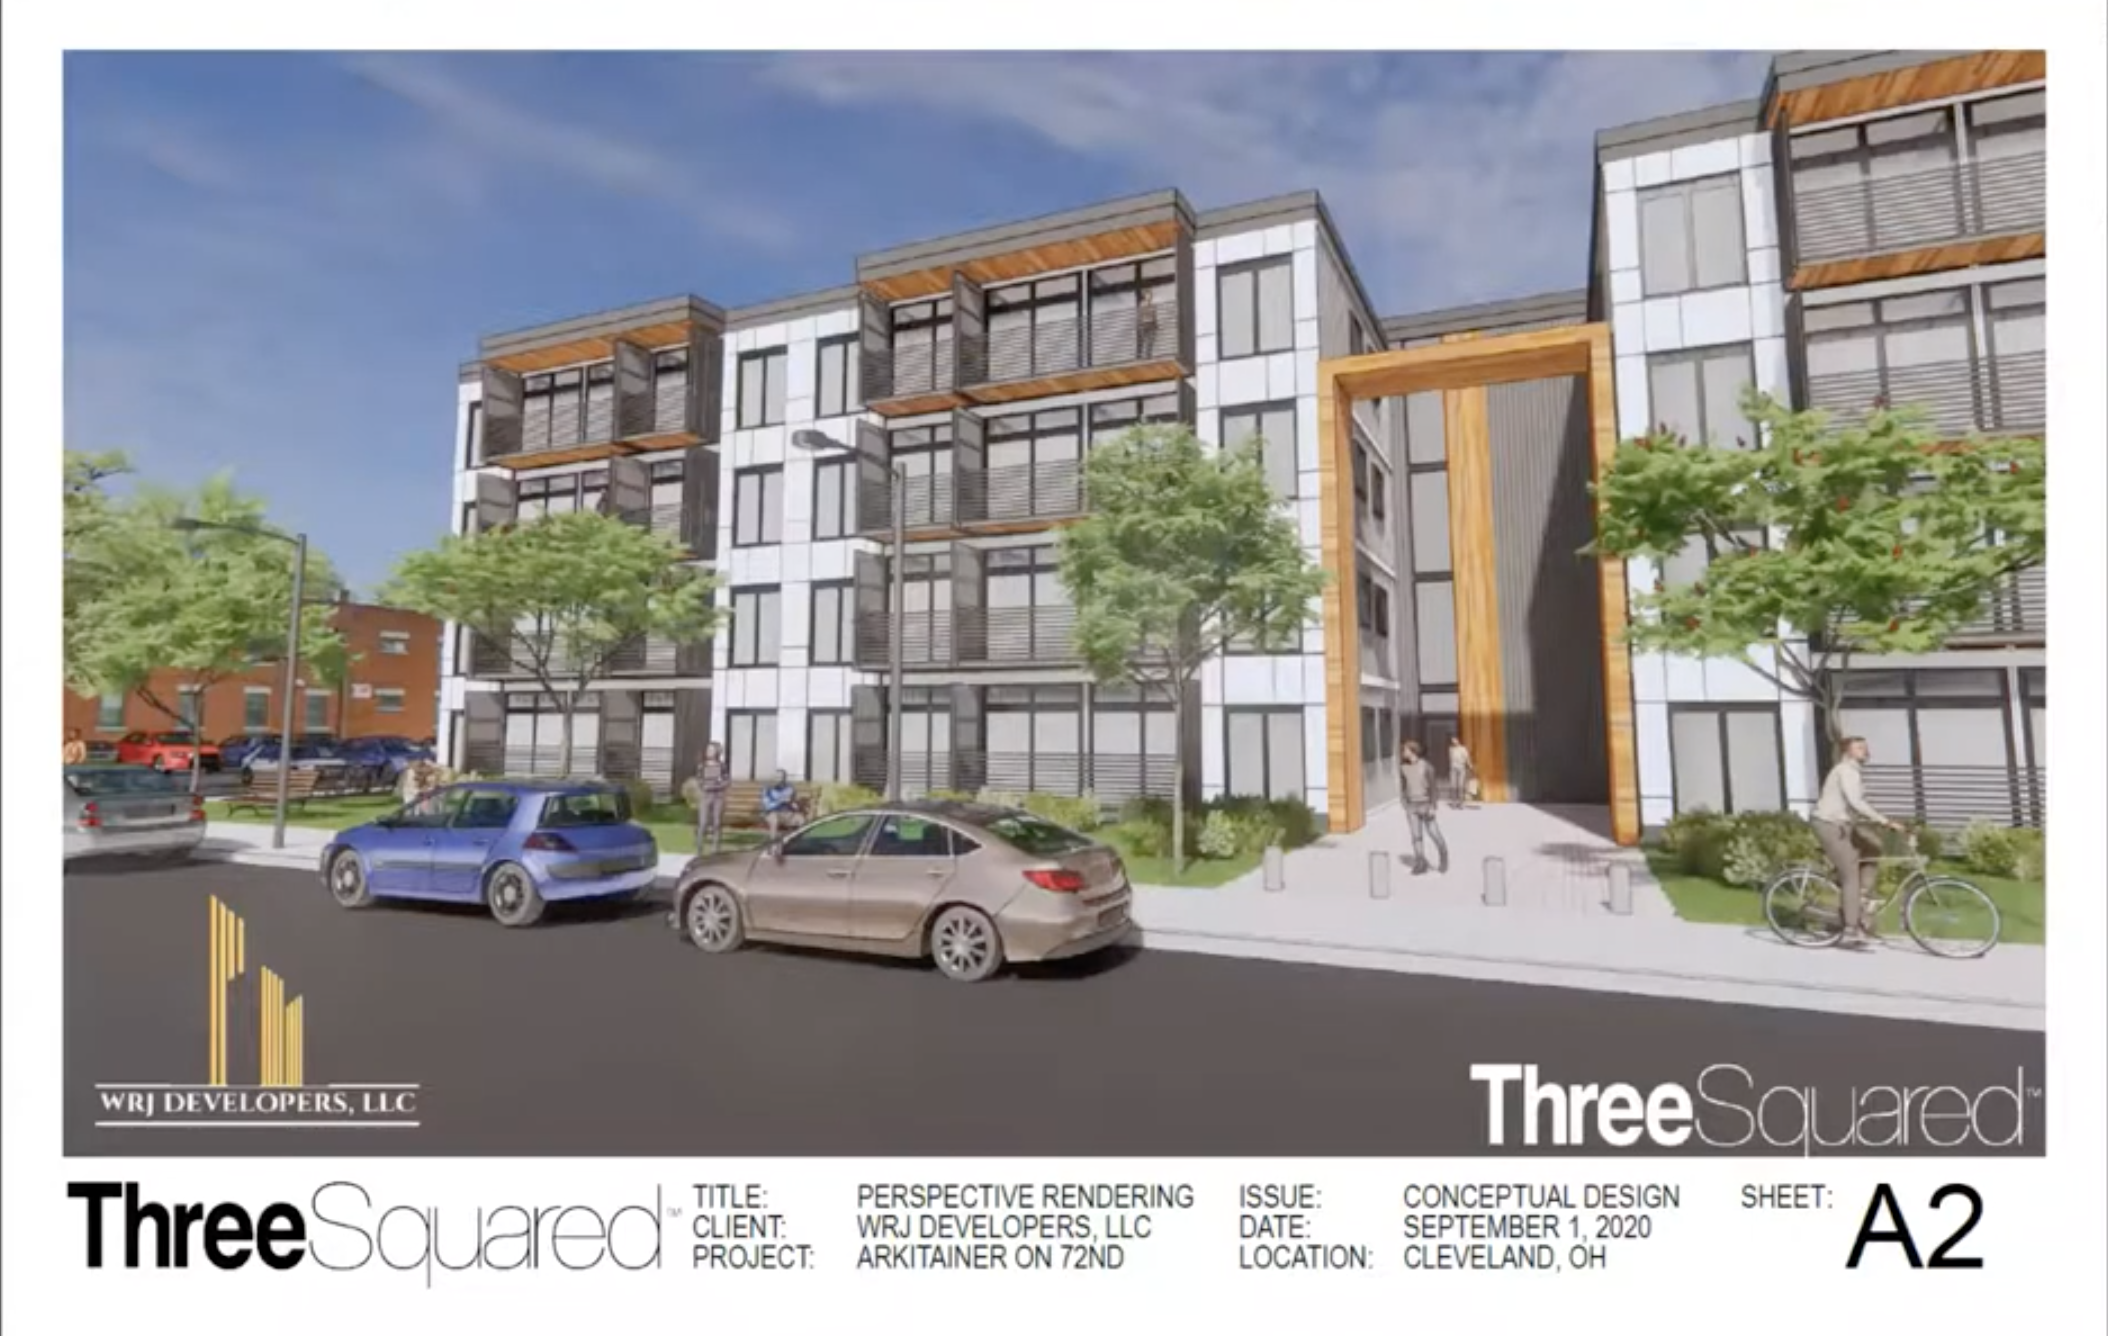 Upcycled Shipping Container Apartments Coming To St Clair Superior Plus A Mixed Use Building In Glenville The Land